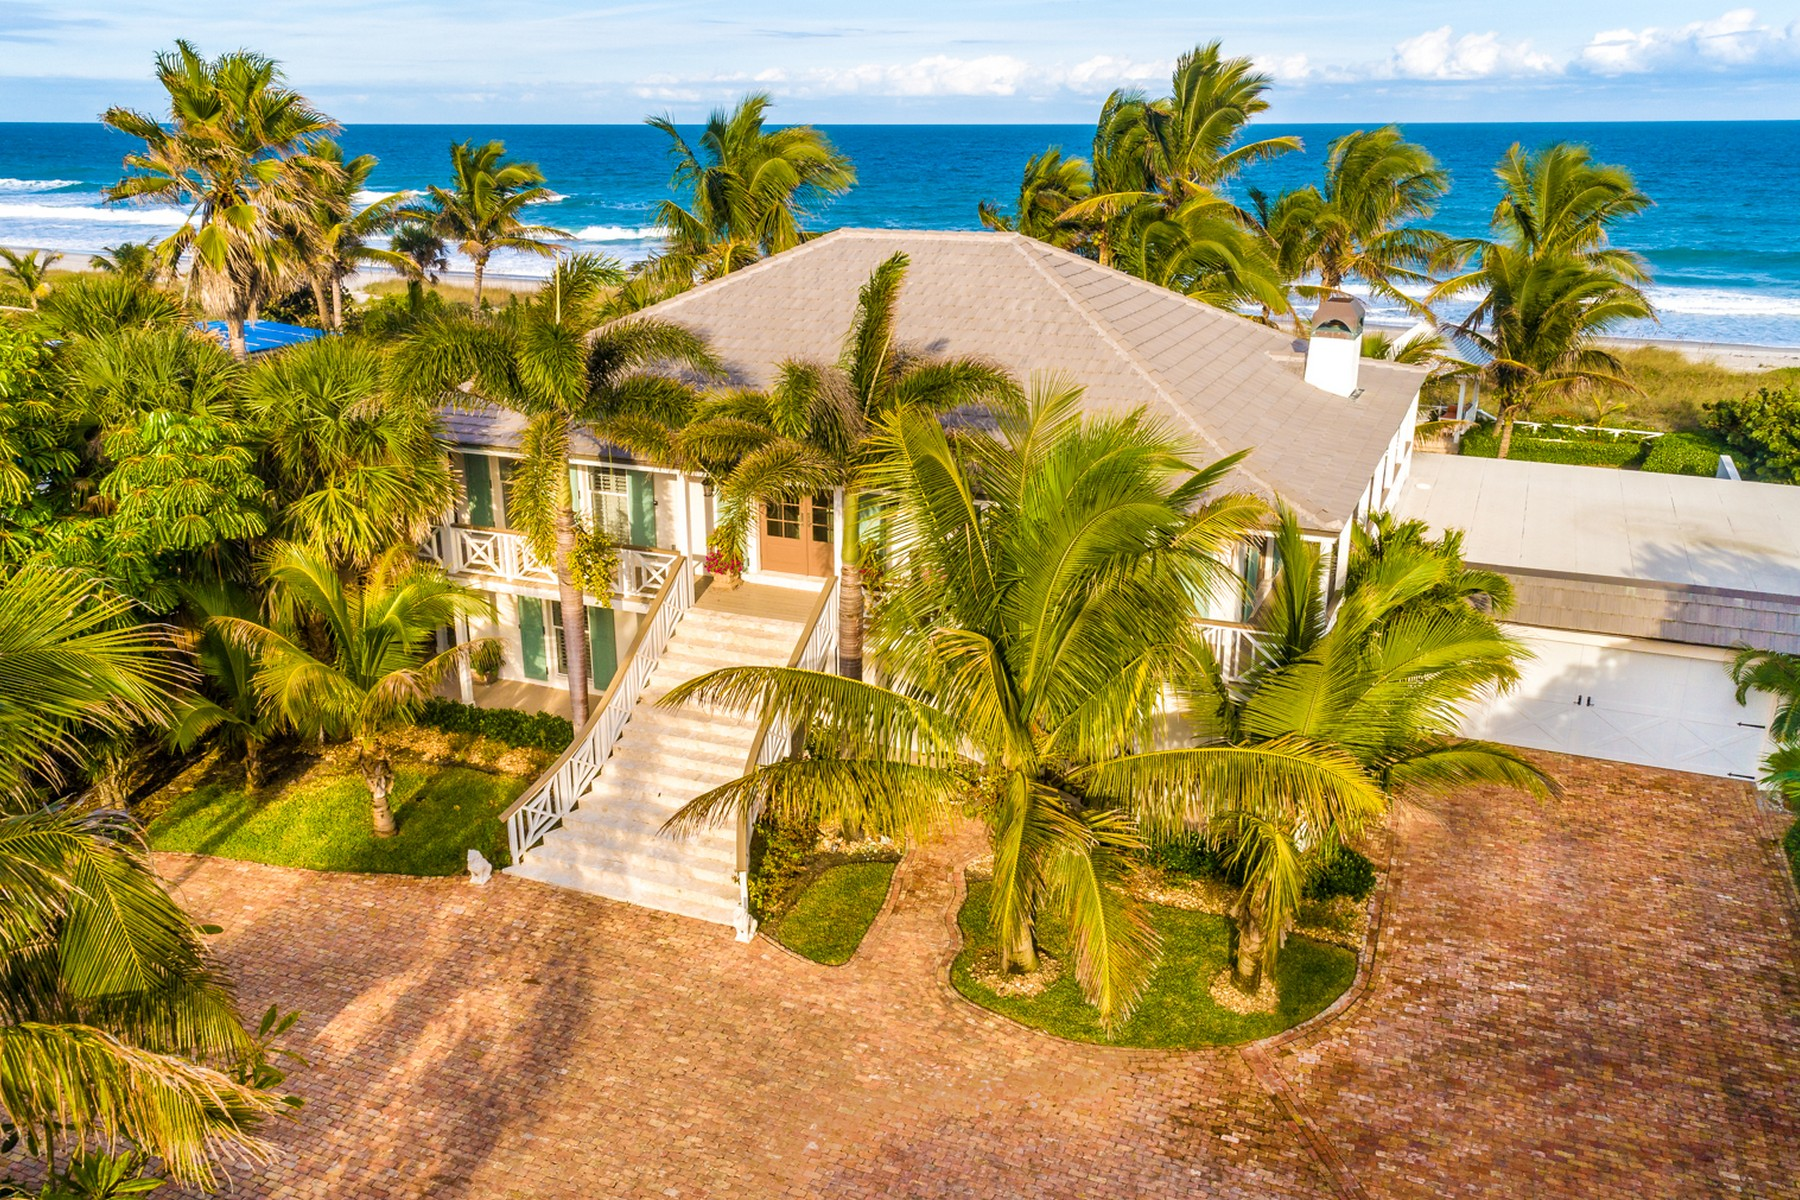 Einfamilienhaus für Verkauf beim Beautiful Oceanfront estate property in rarely available Indialantic by the Sea. 1517 S Miramar Avenue Indialantic, Florida 32903 Vereinigte Staaten